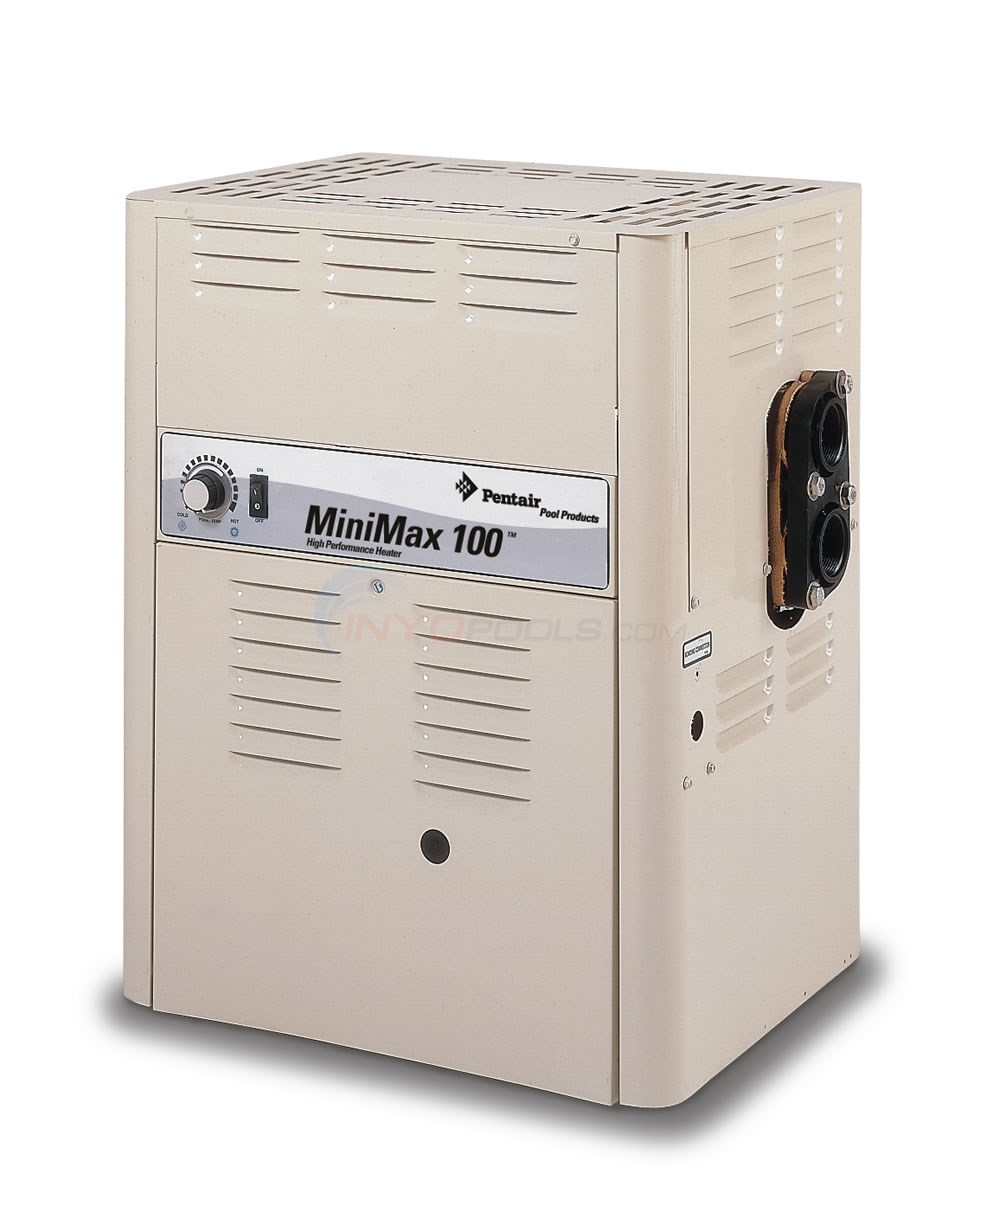 Pentair Minimax 100 A/G Pool Heater 100000 BTU NG MV - 460352